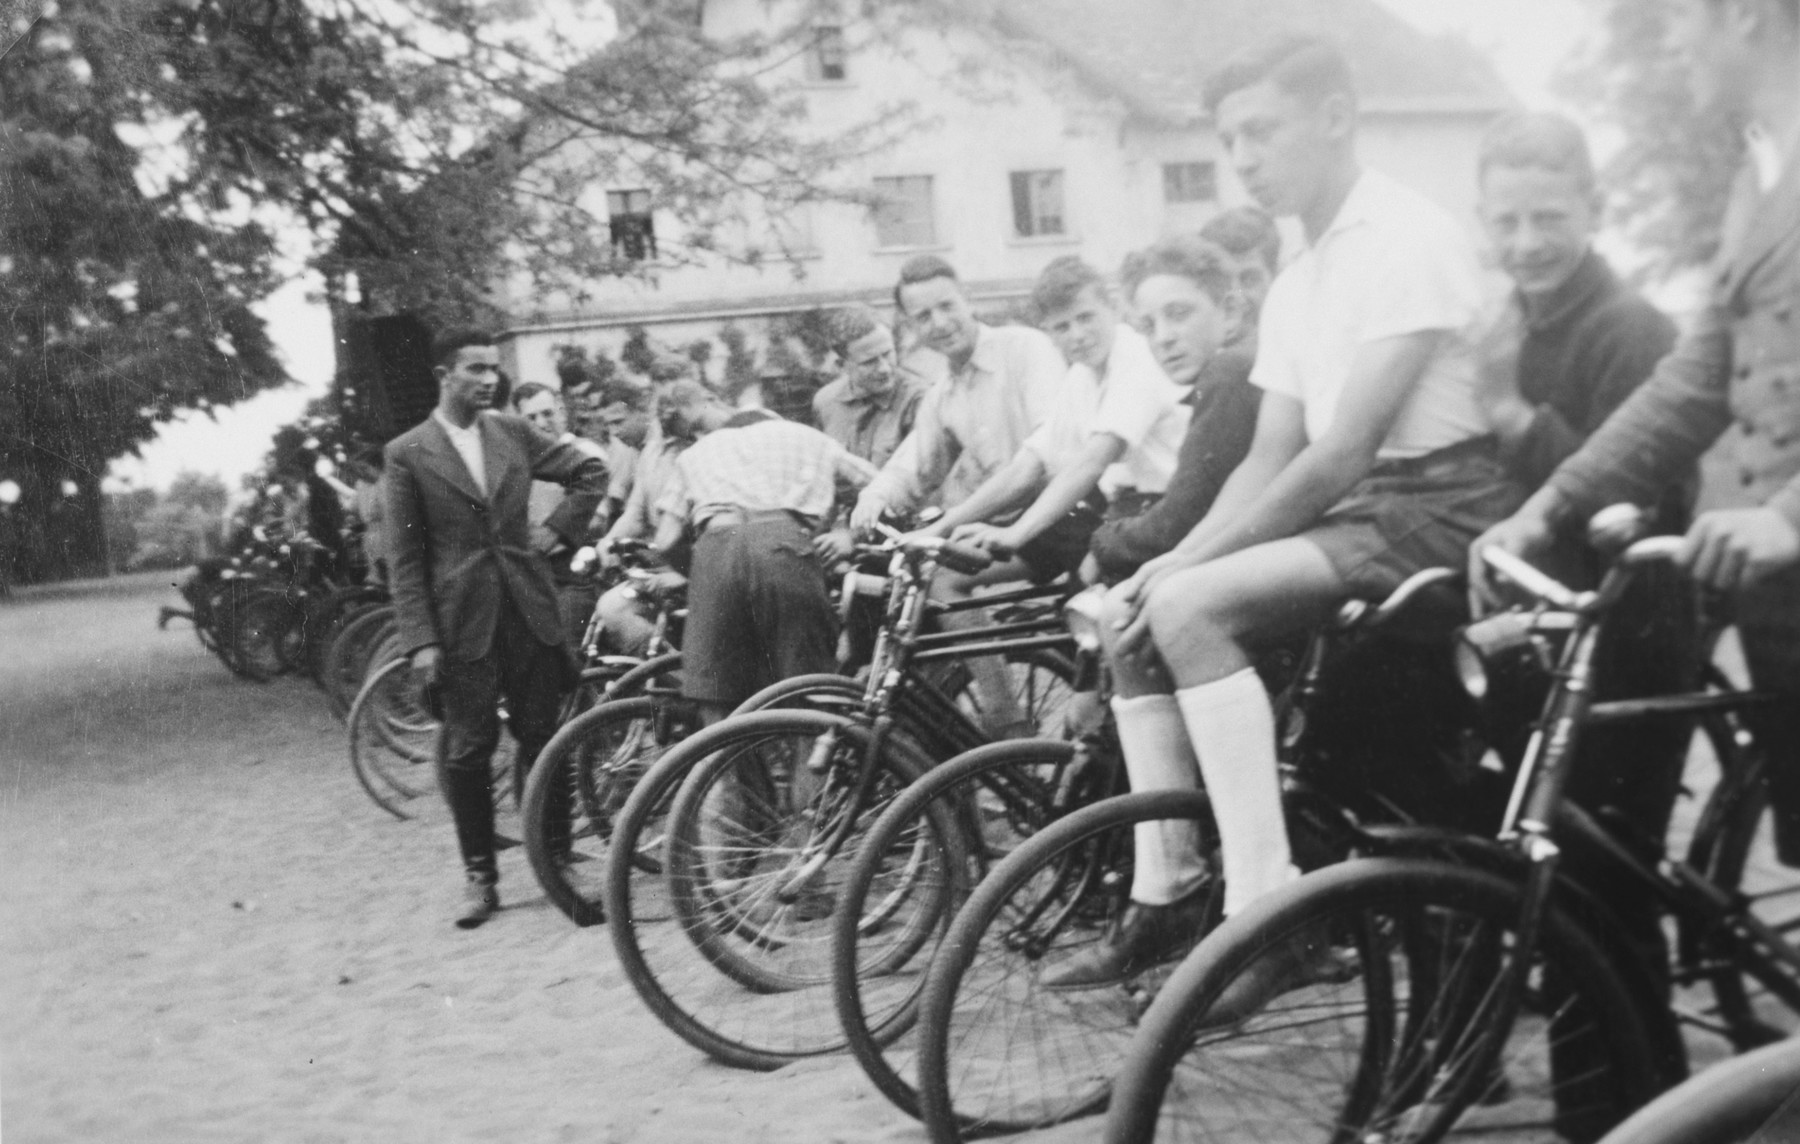 Jewish youth from a training farm outside of Breslau stand in line on bicycles before a raise or an outing.